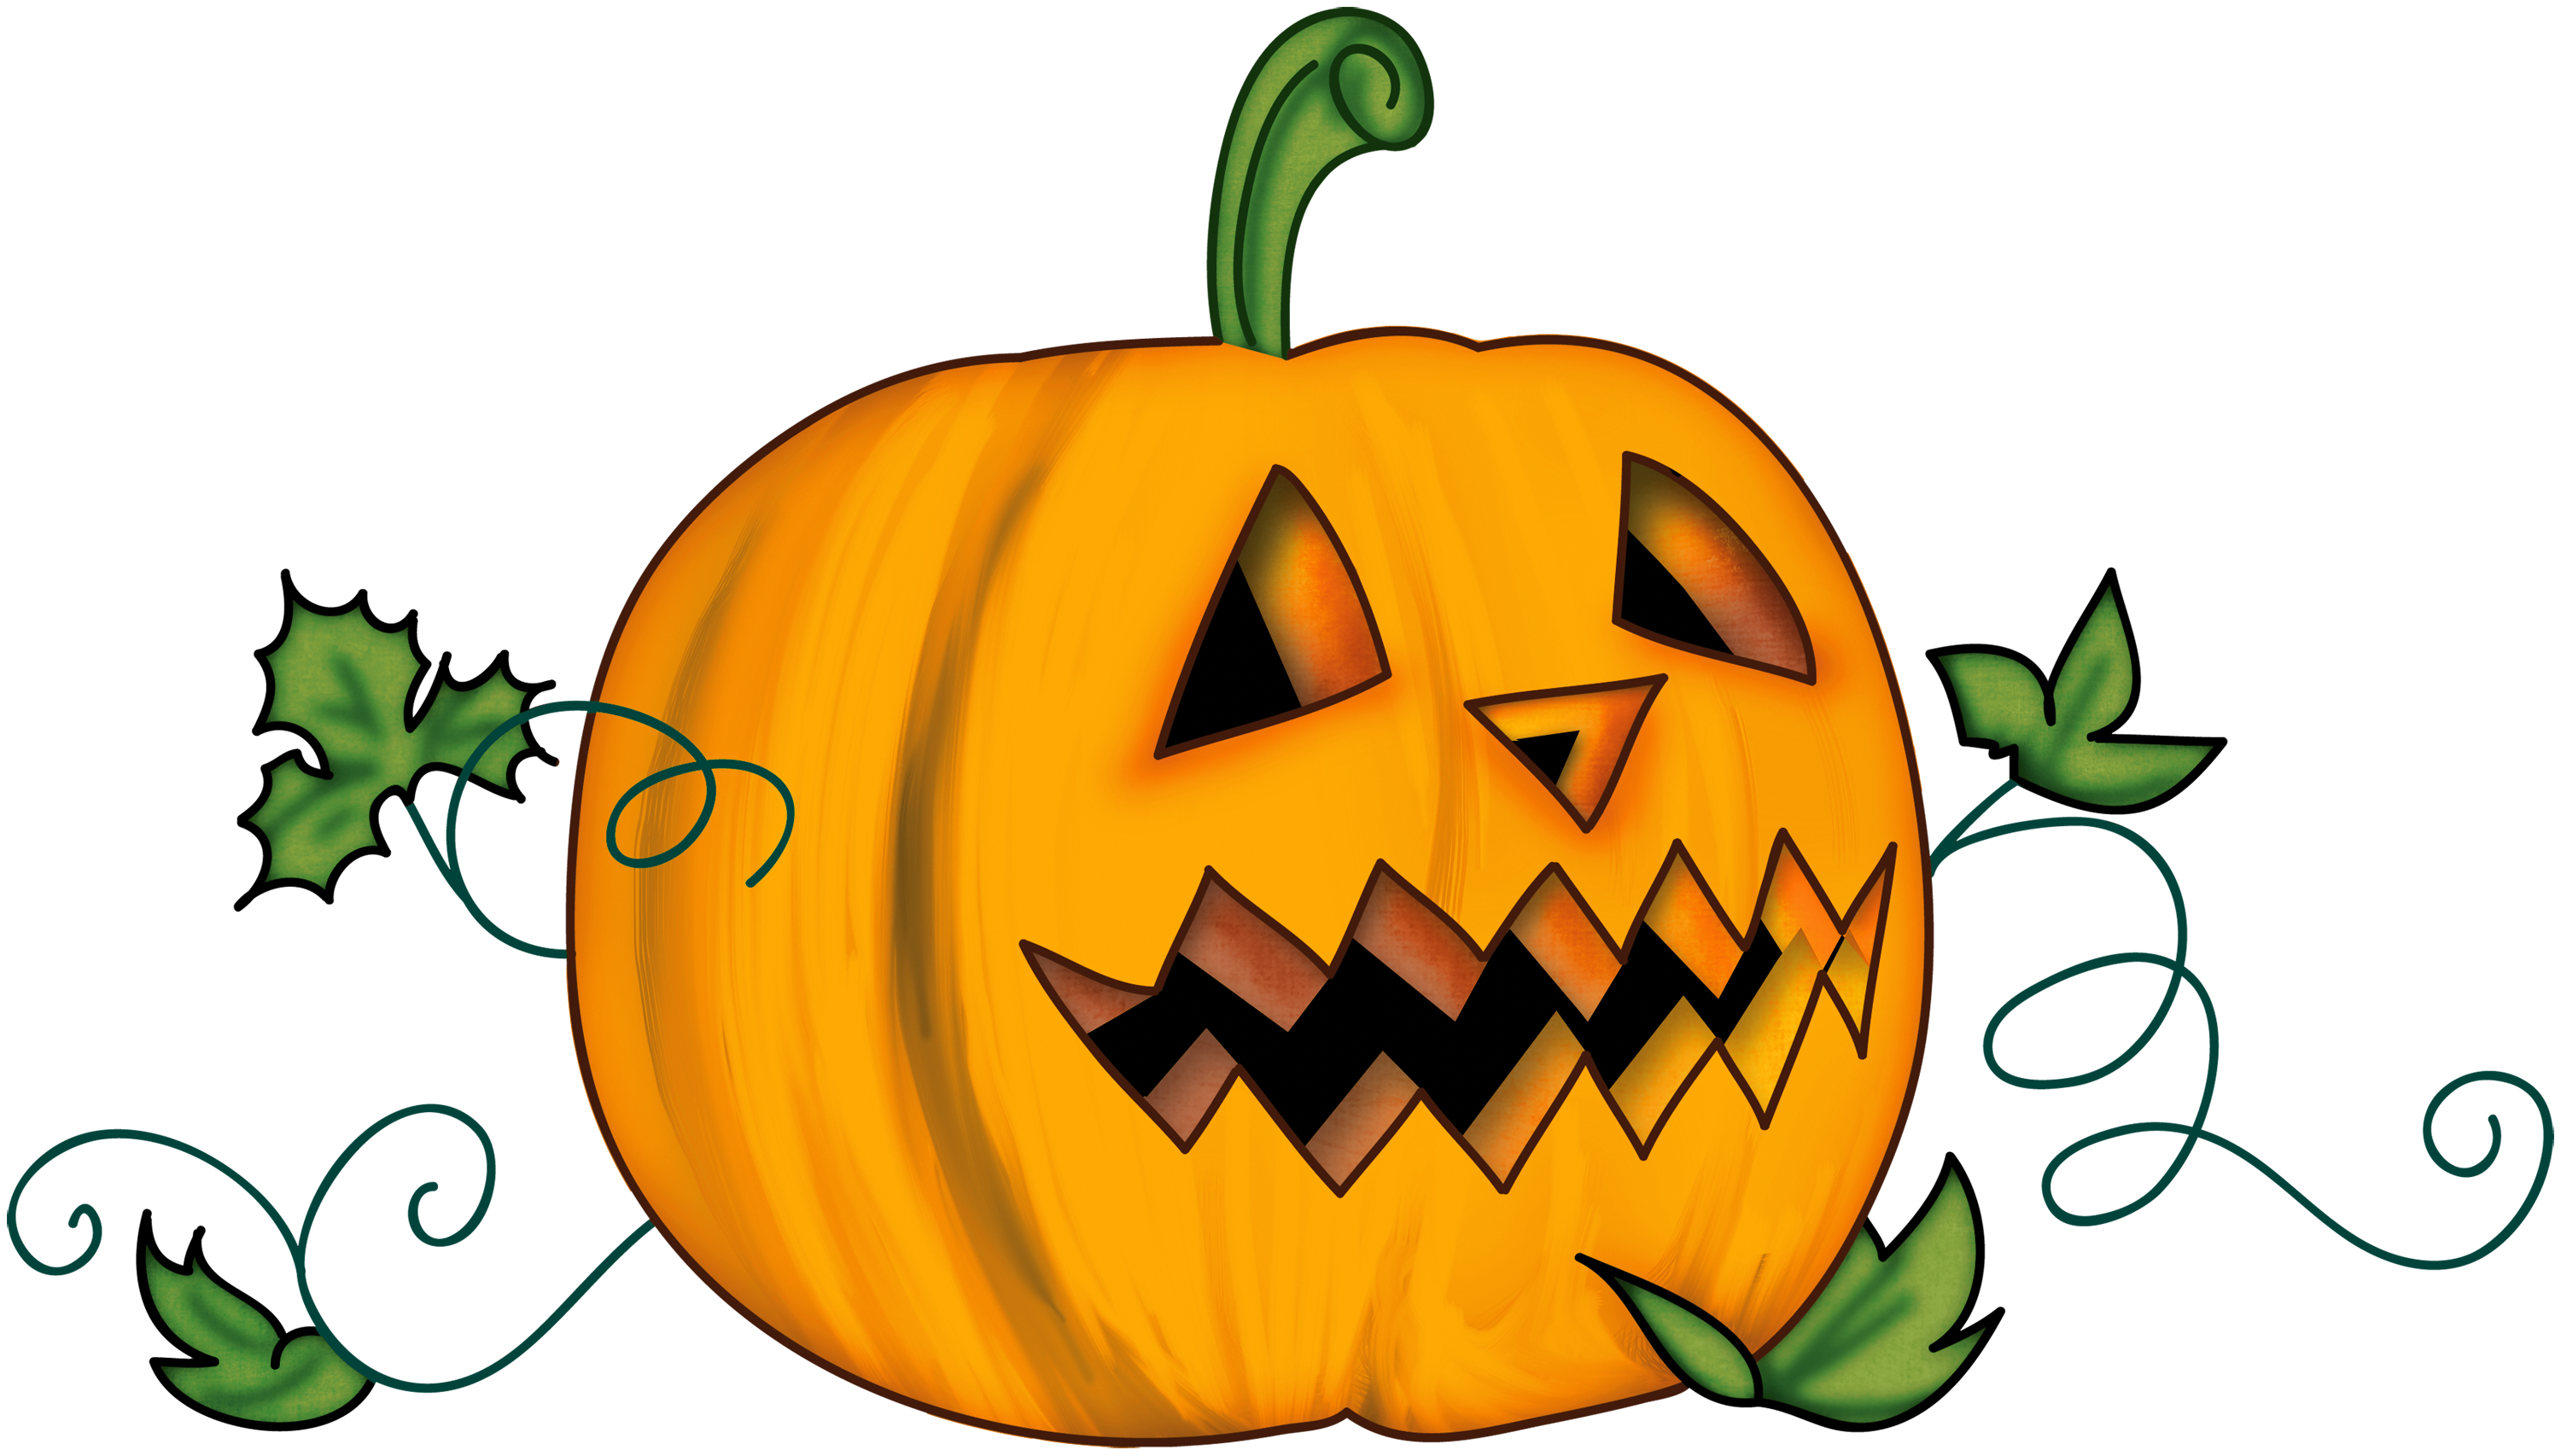 Free clipart of a pumpkin png royalty free library Free Pumpkin Clipart at GetDrawings.com | Free for personal use Free ... png royalty free library